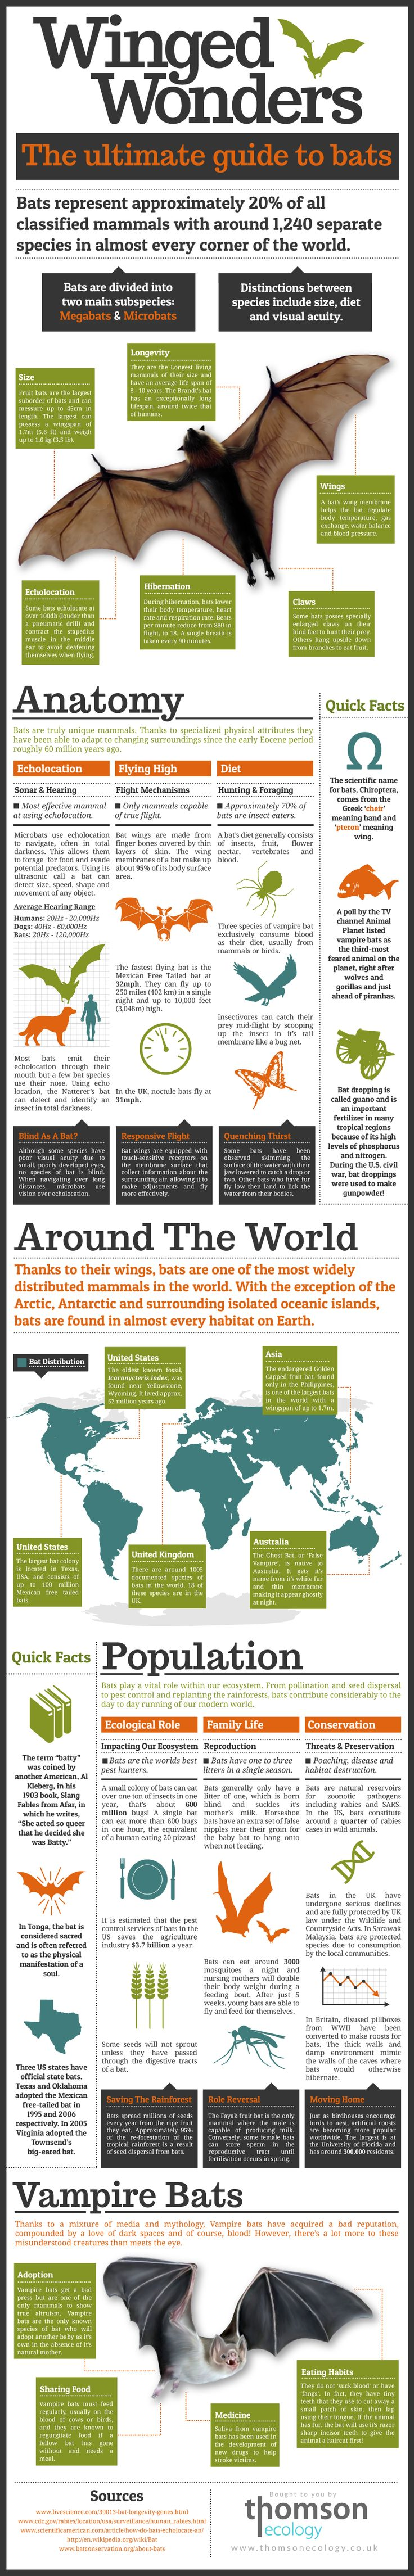 Magazine style infographic all about bats! With digitally drawn illustrations. For thomsonecology.co.uk